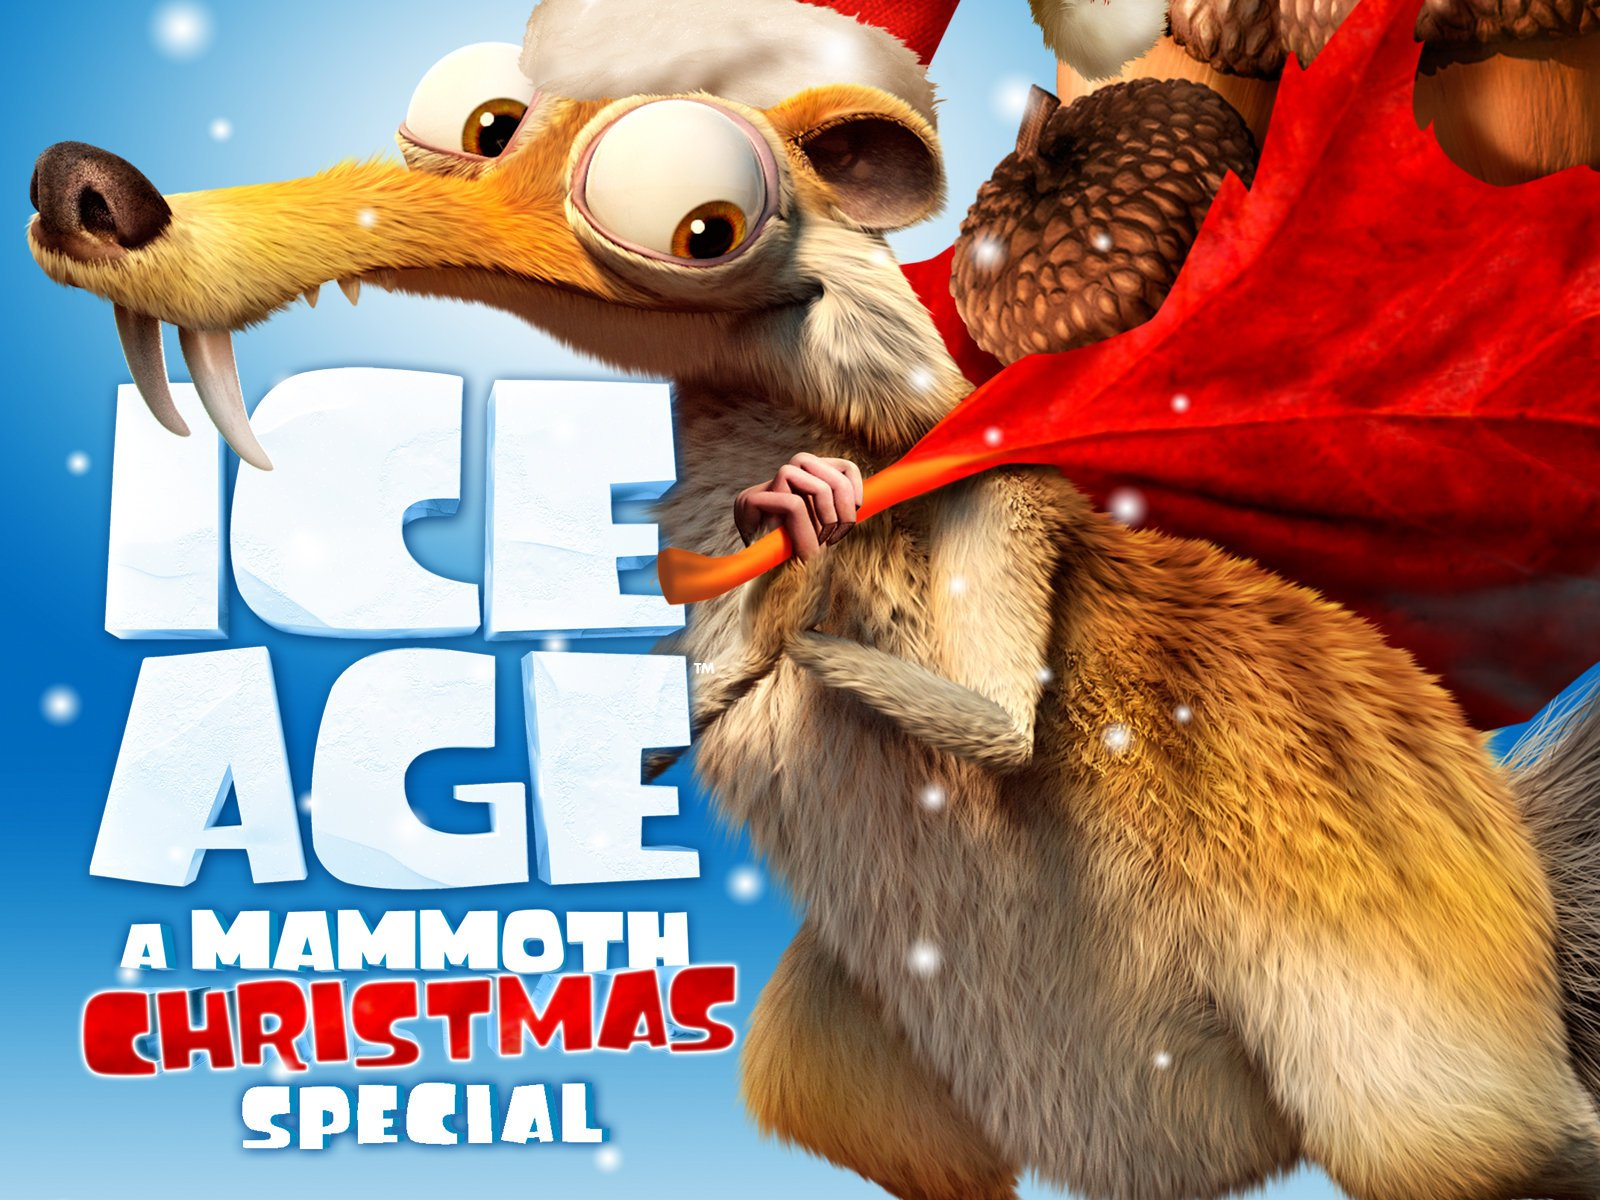 ice age a mammoth christmas full movie free